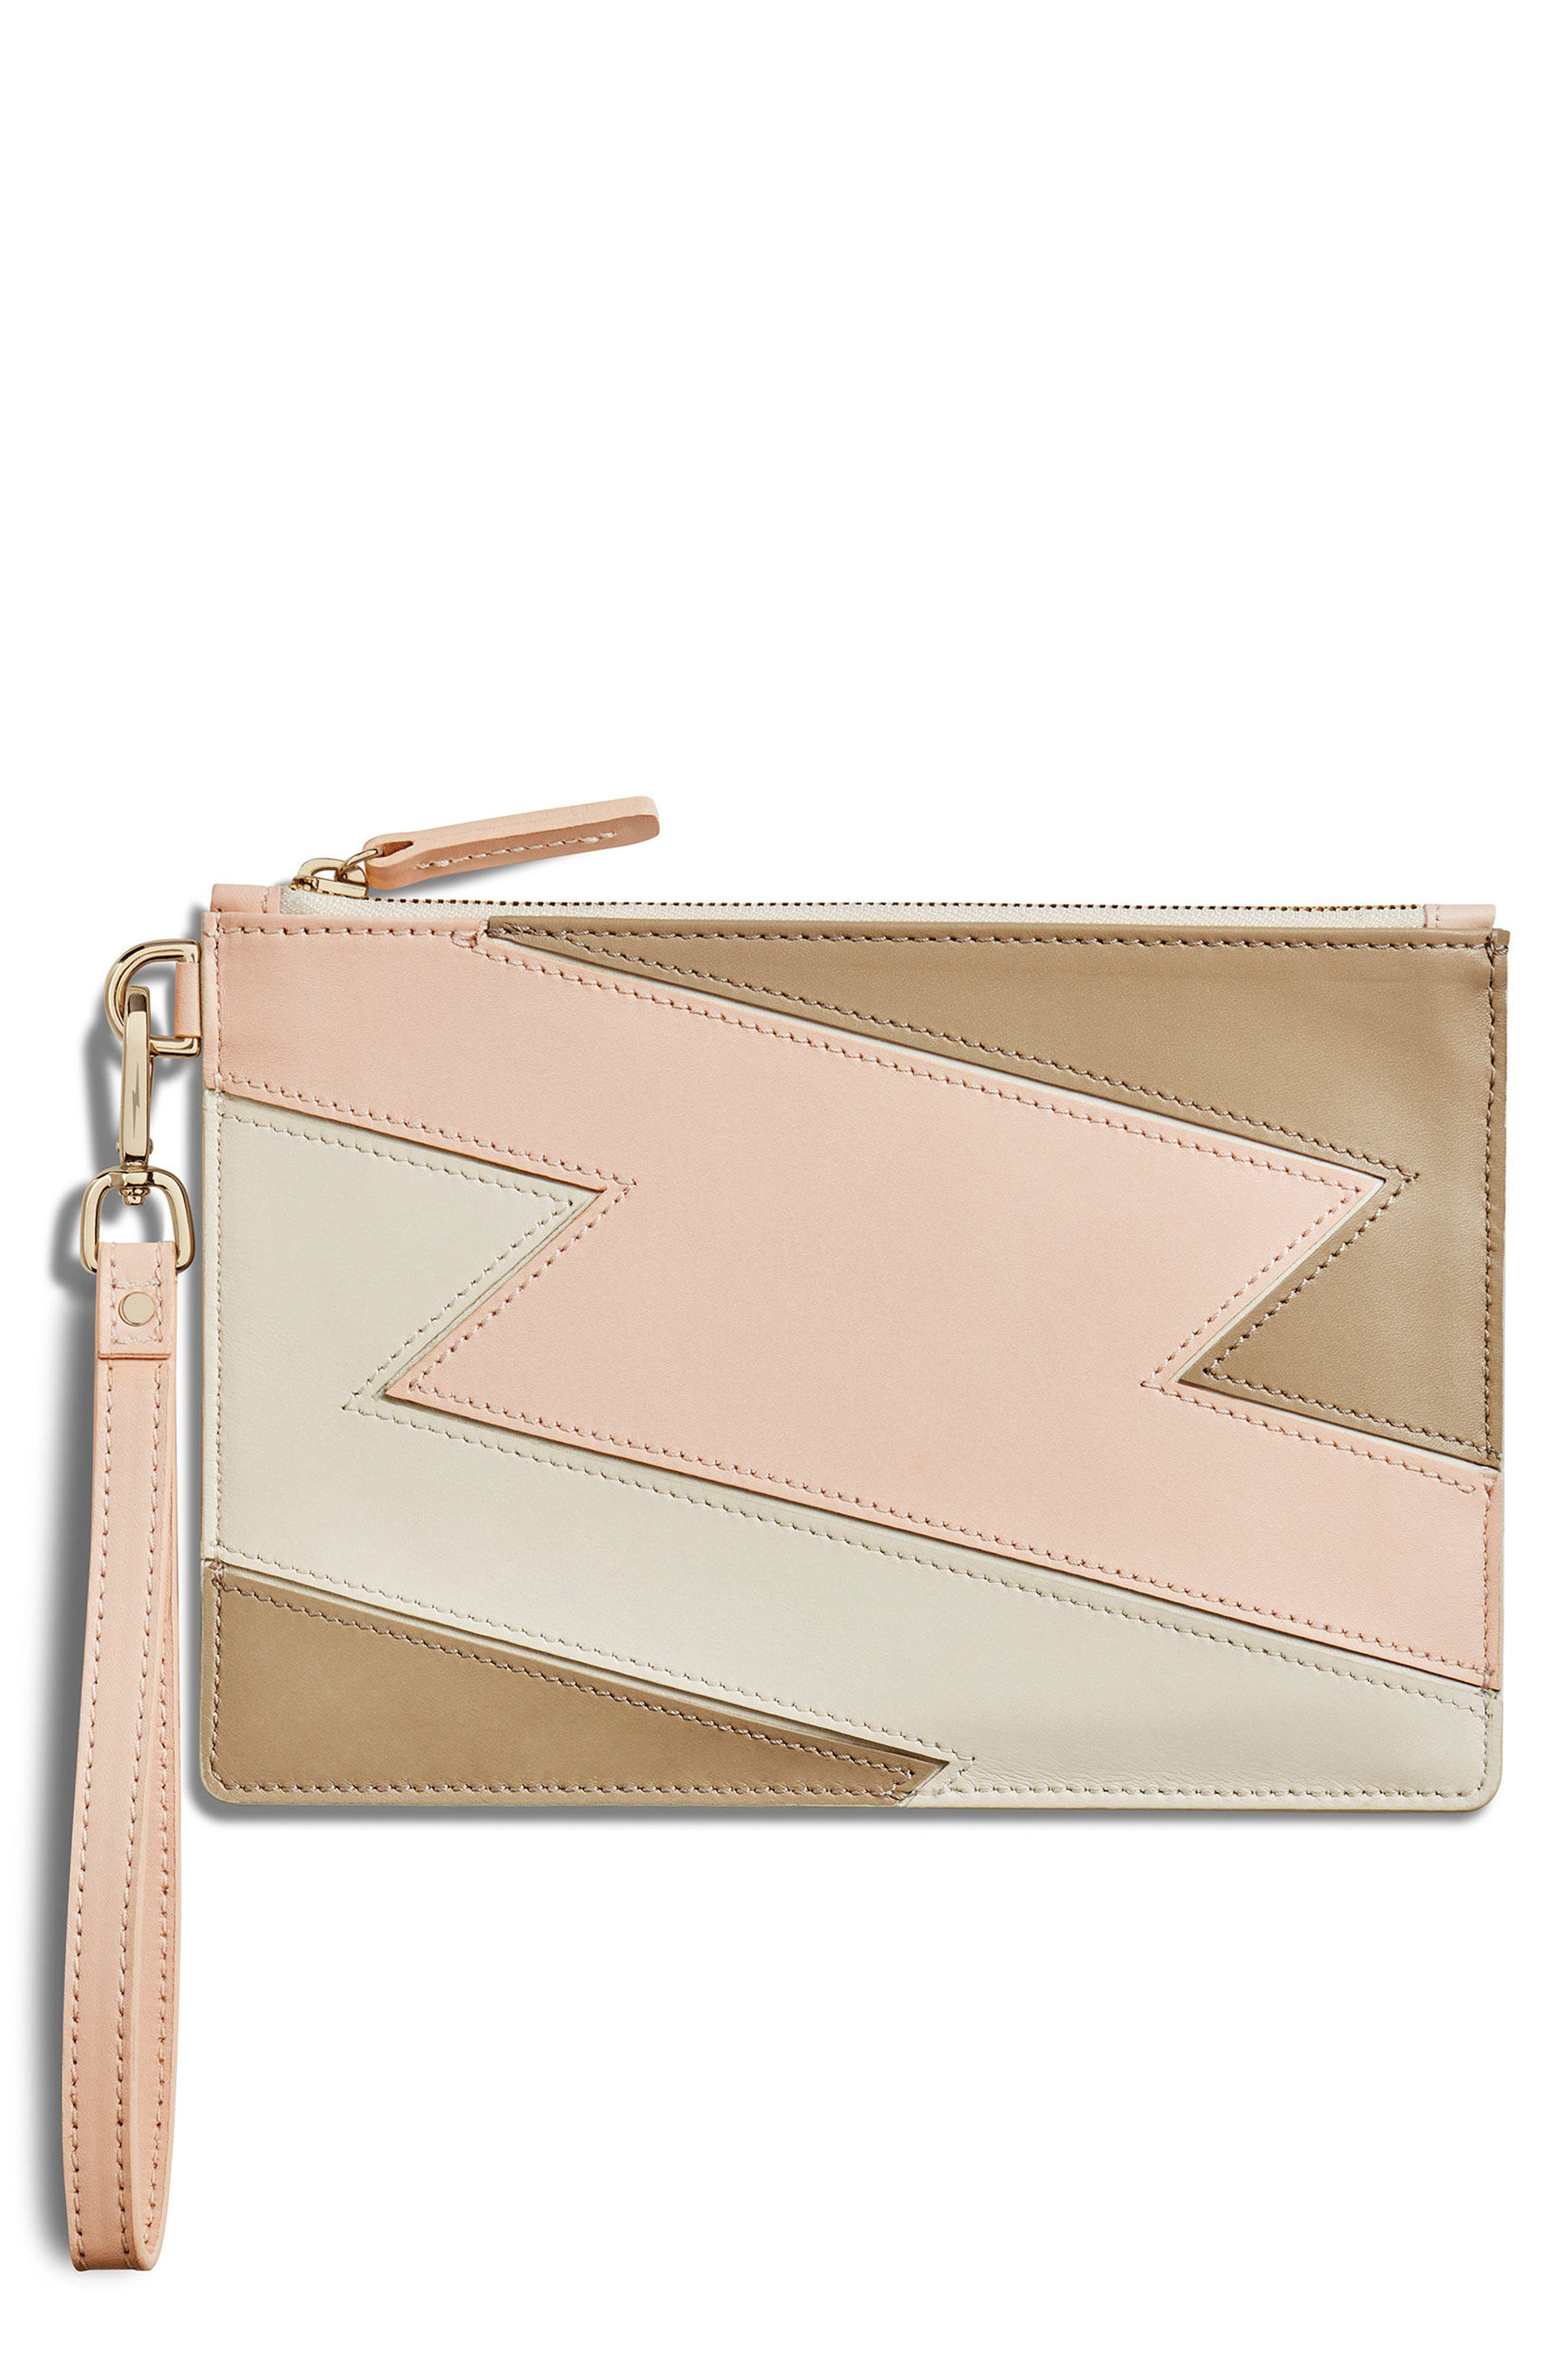 Shinola Bolt Nappa Leather Wristlet